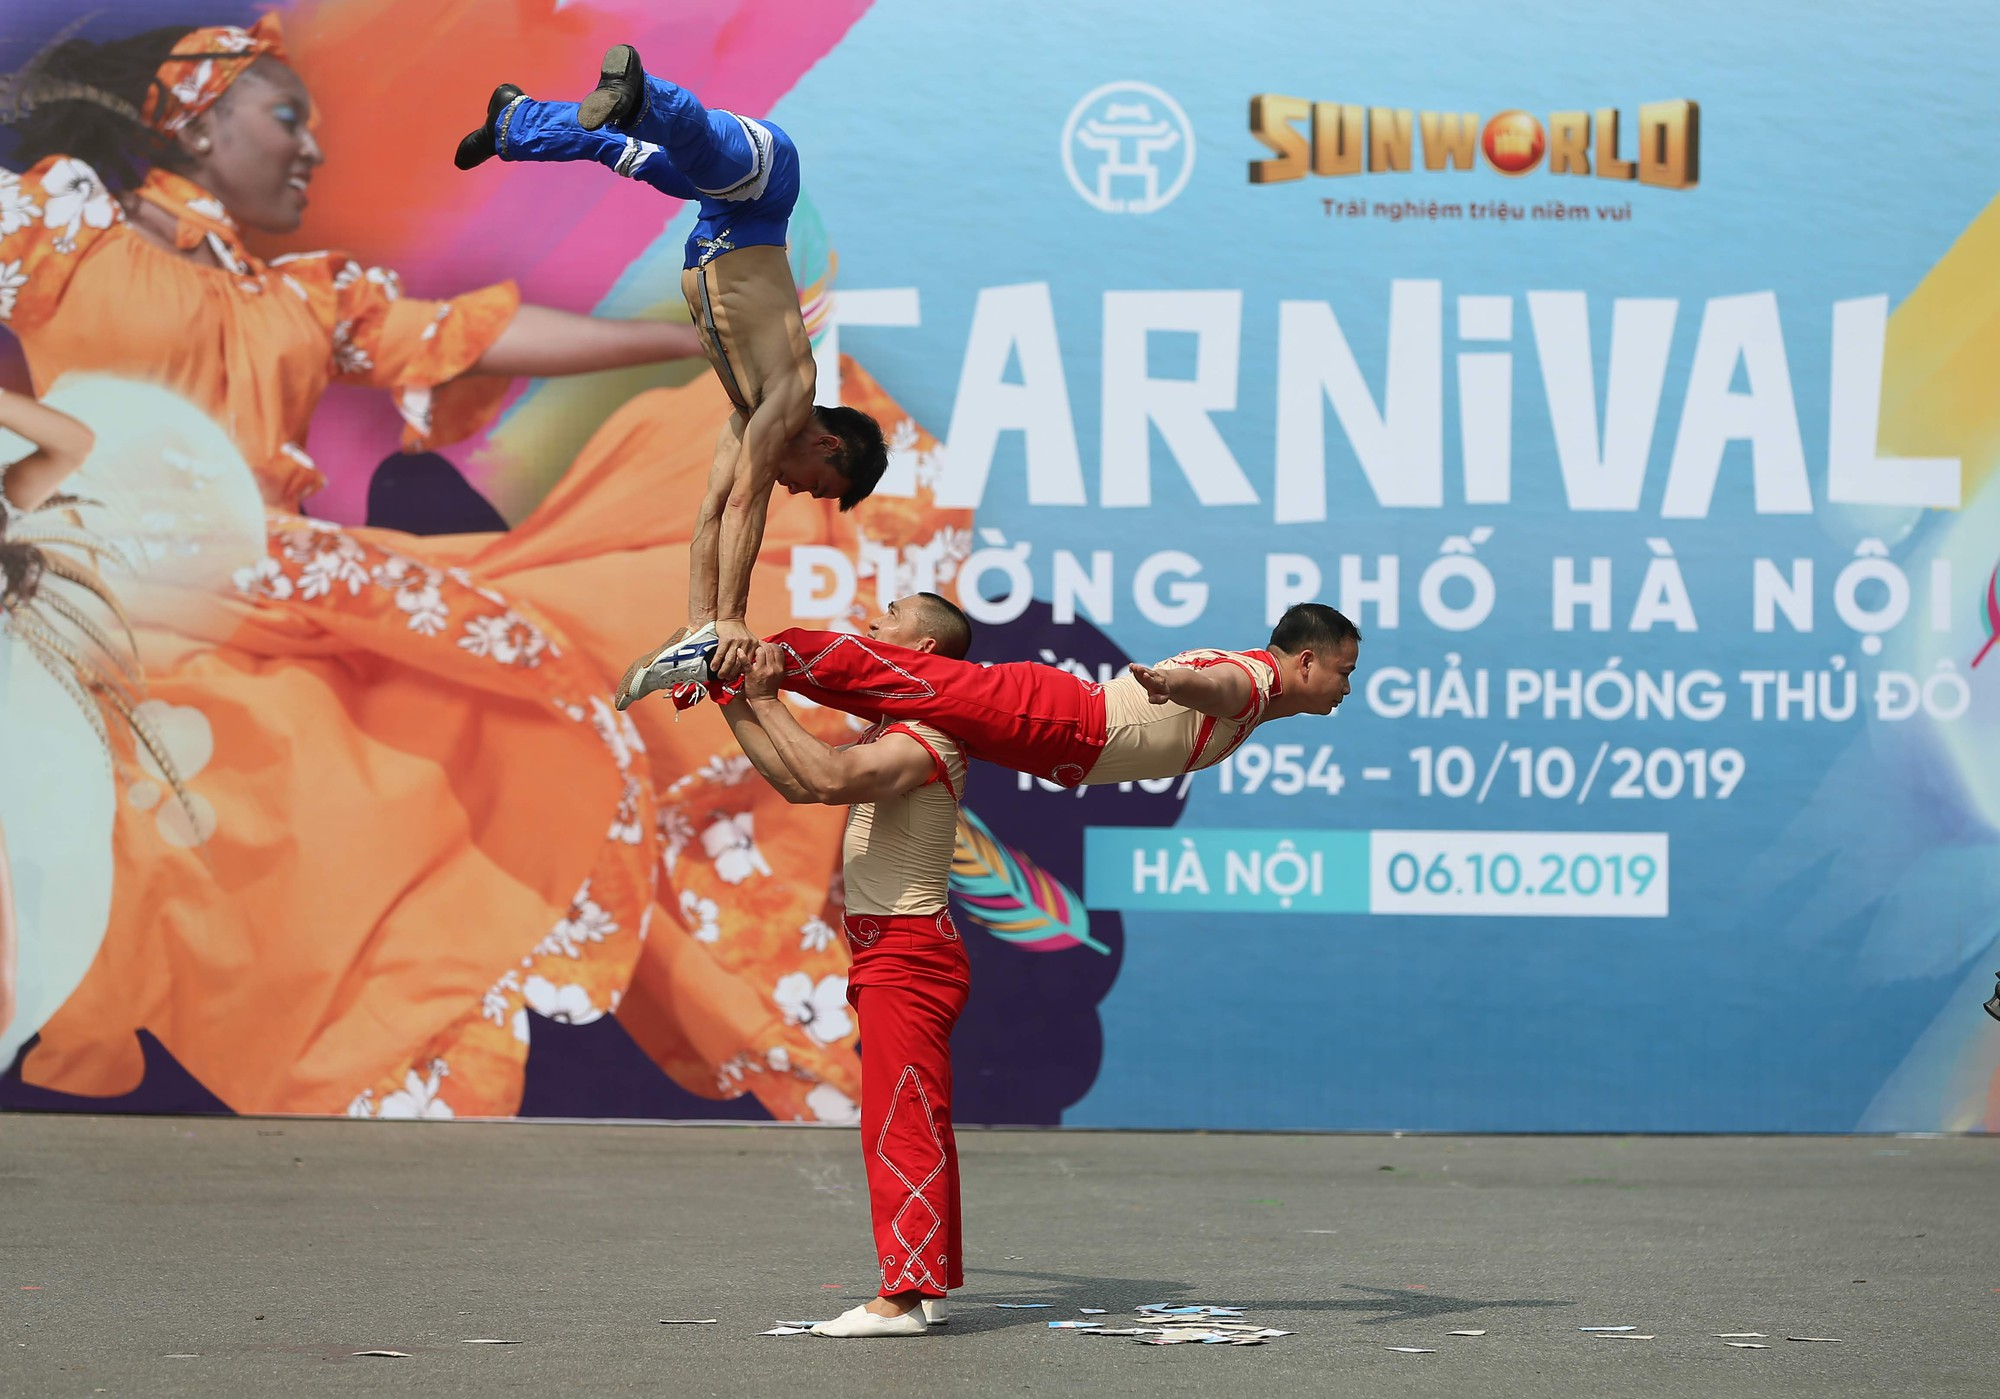 carnival sun world ha noi 610 (83)